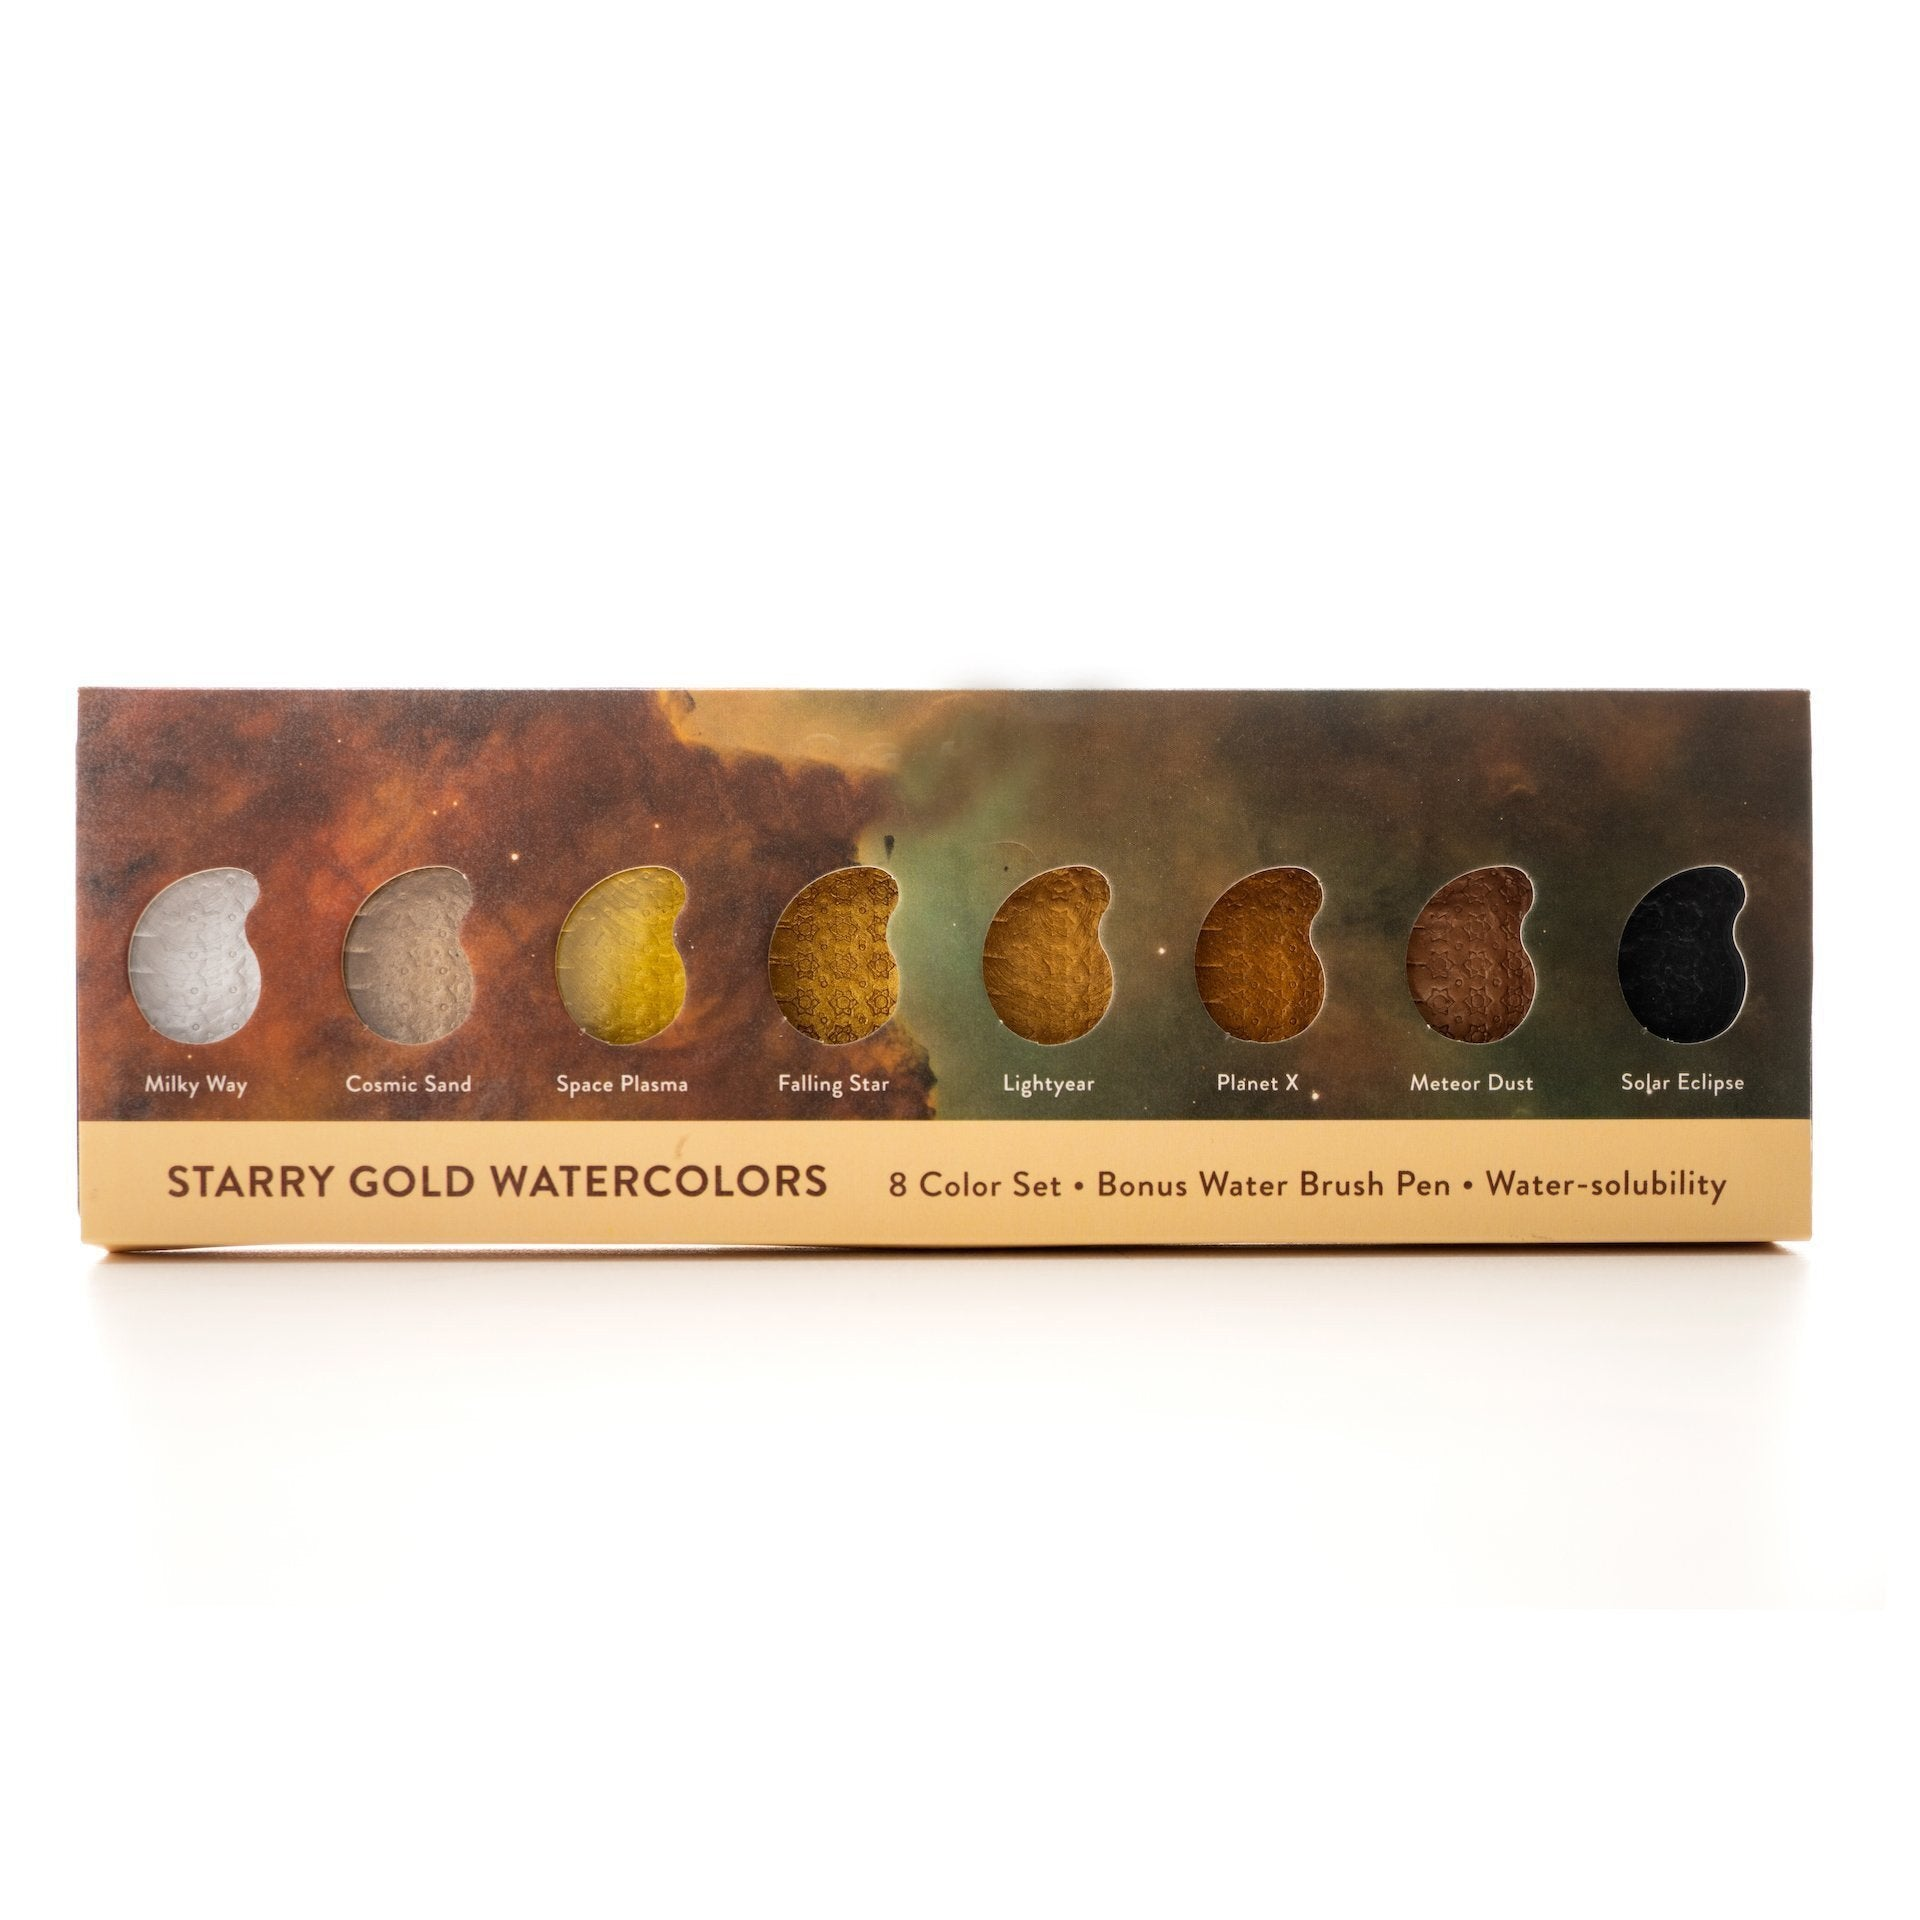 Starry Gold Watercolors 5 Set